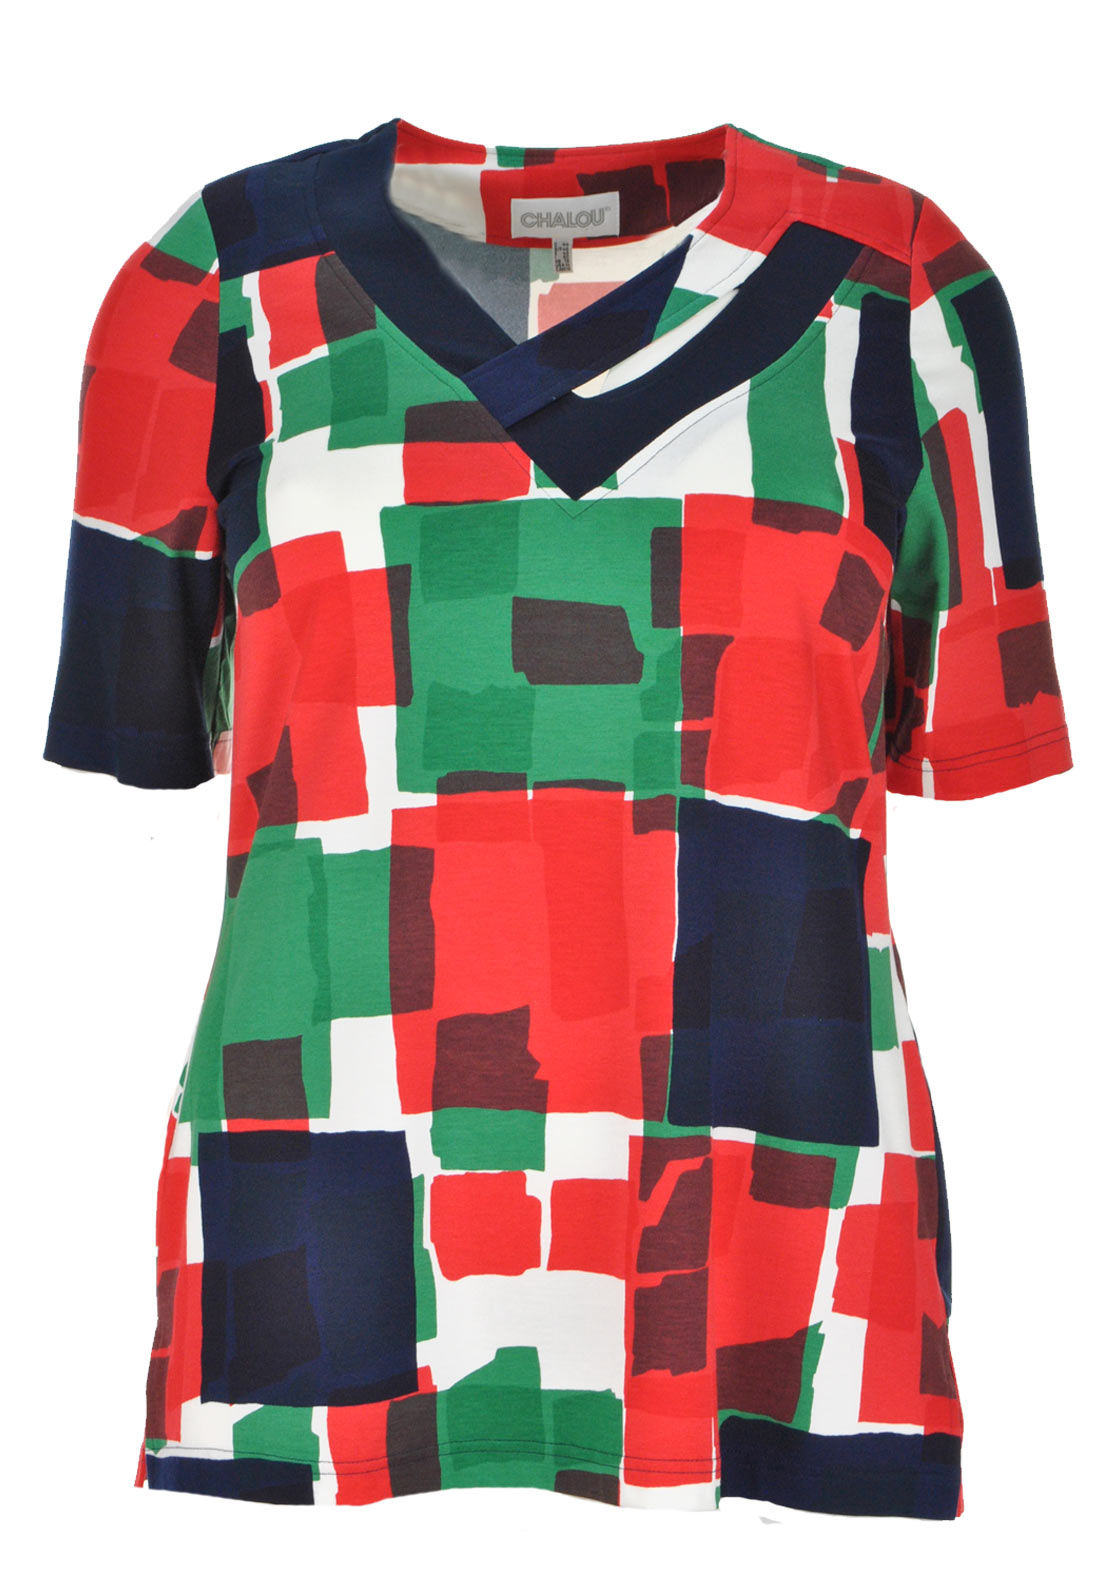 Chalou Abstract Print Short Sleeve V-Neck T-Shirt, Red Multi